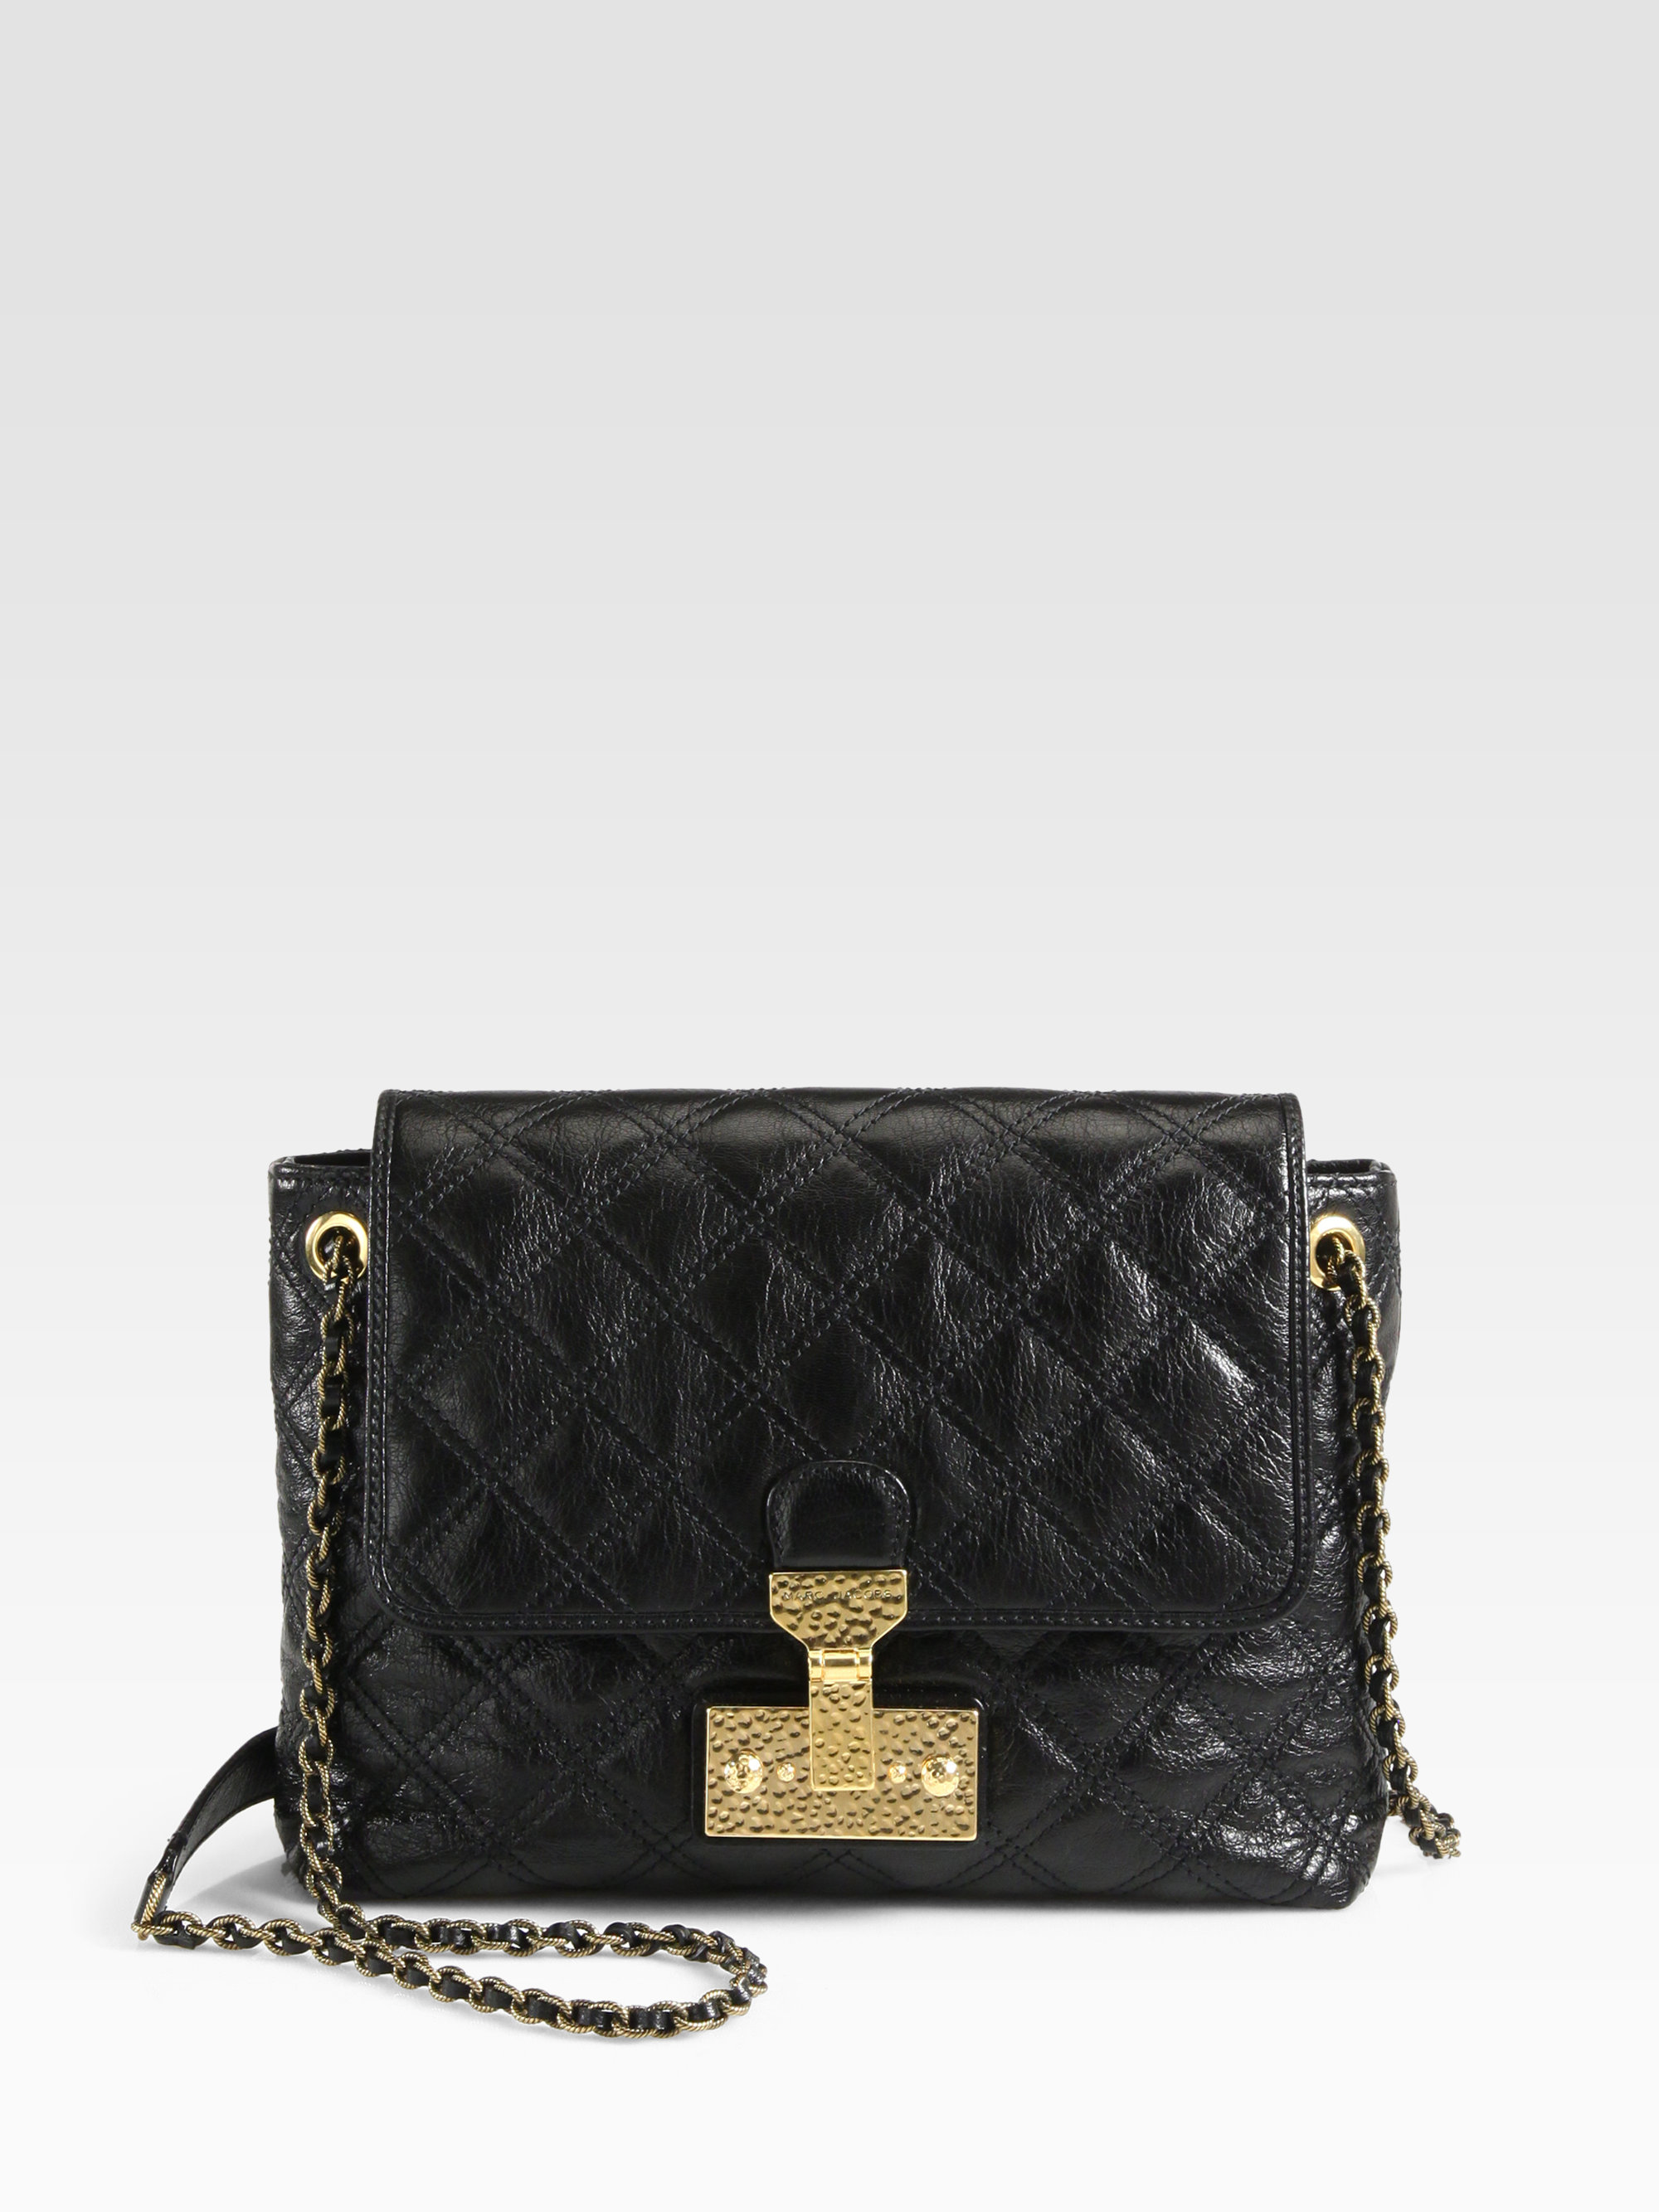 Marc jacobs Baroque Xl Single Quilted Shoulder Bag in Black   Lyst : marc jacobs quilted bags - Adamdwight.com